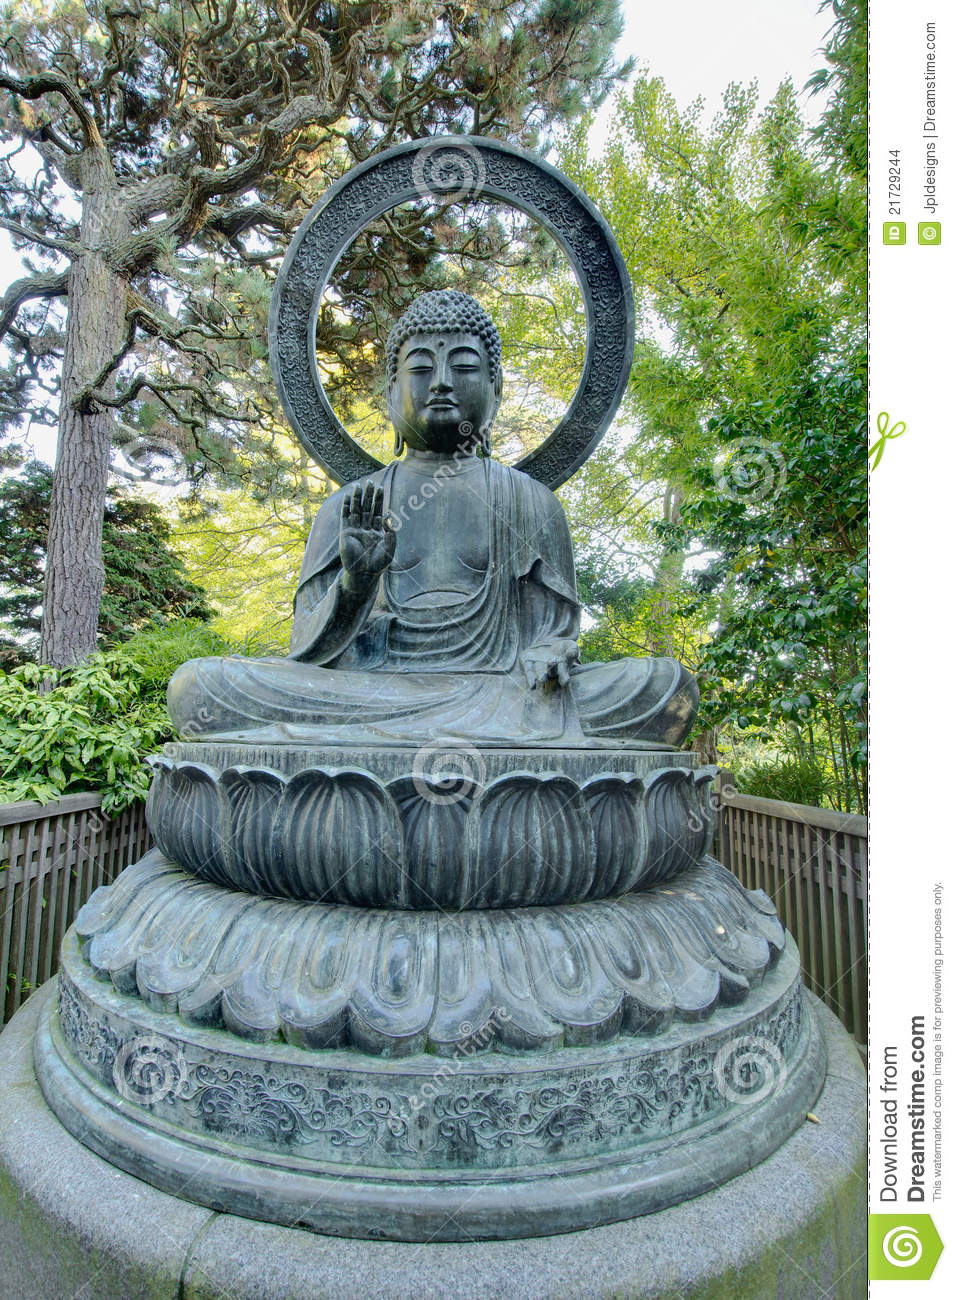 statue en bronze de bouddha dans le jardin japonais images stock image 21729244. Black Bedroom Furniture Sets. Home Design Ideas